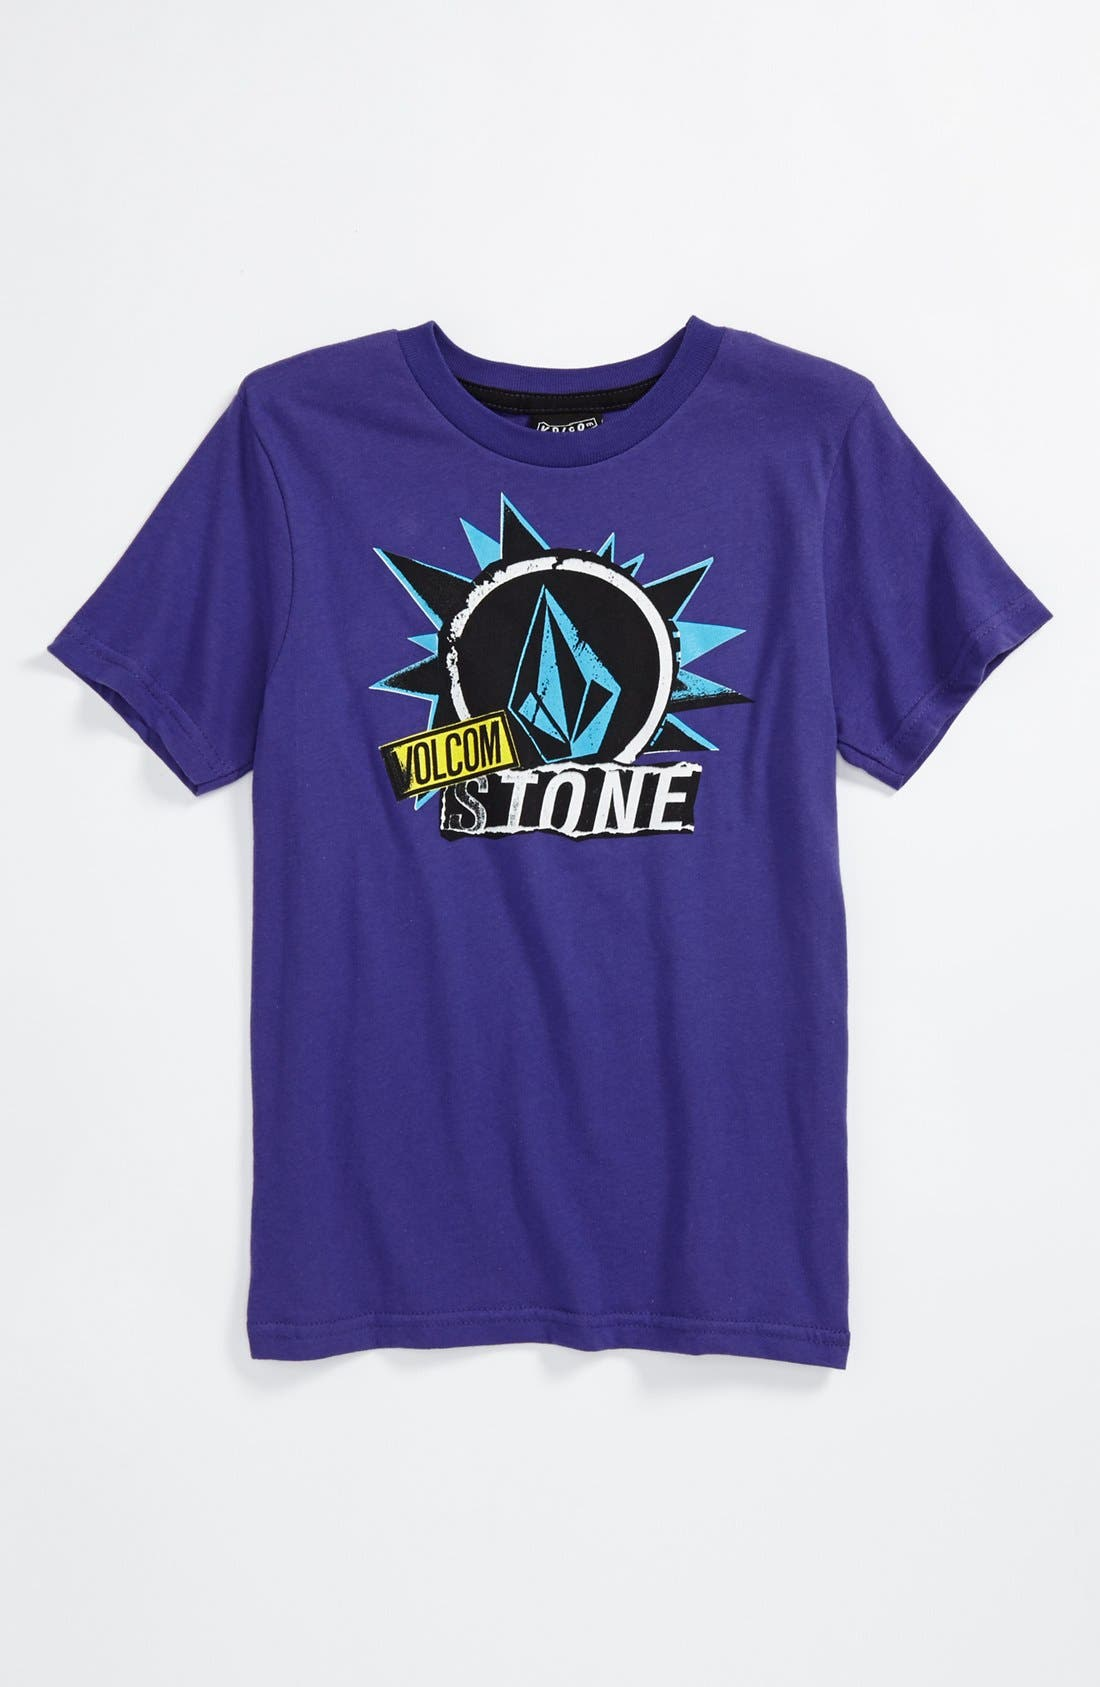 Alternate Image 1 Selected - Volcom 'Pasted Stone' T-Shirt (Little Boys)